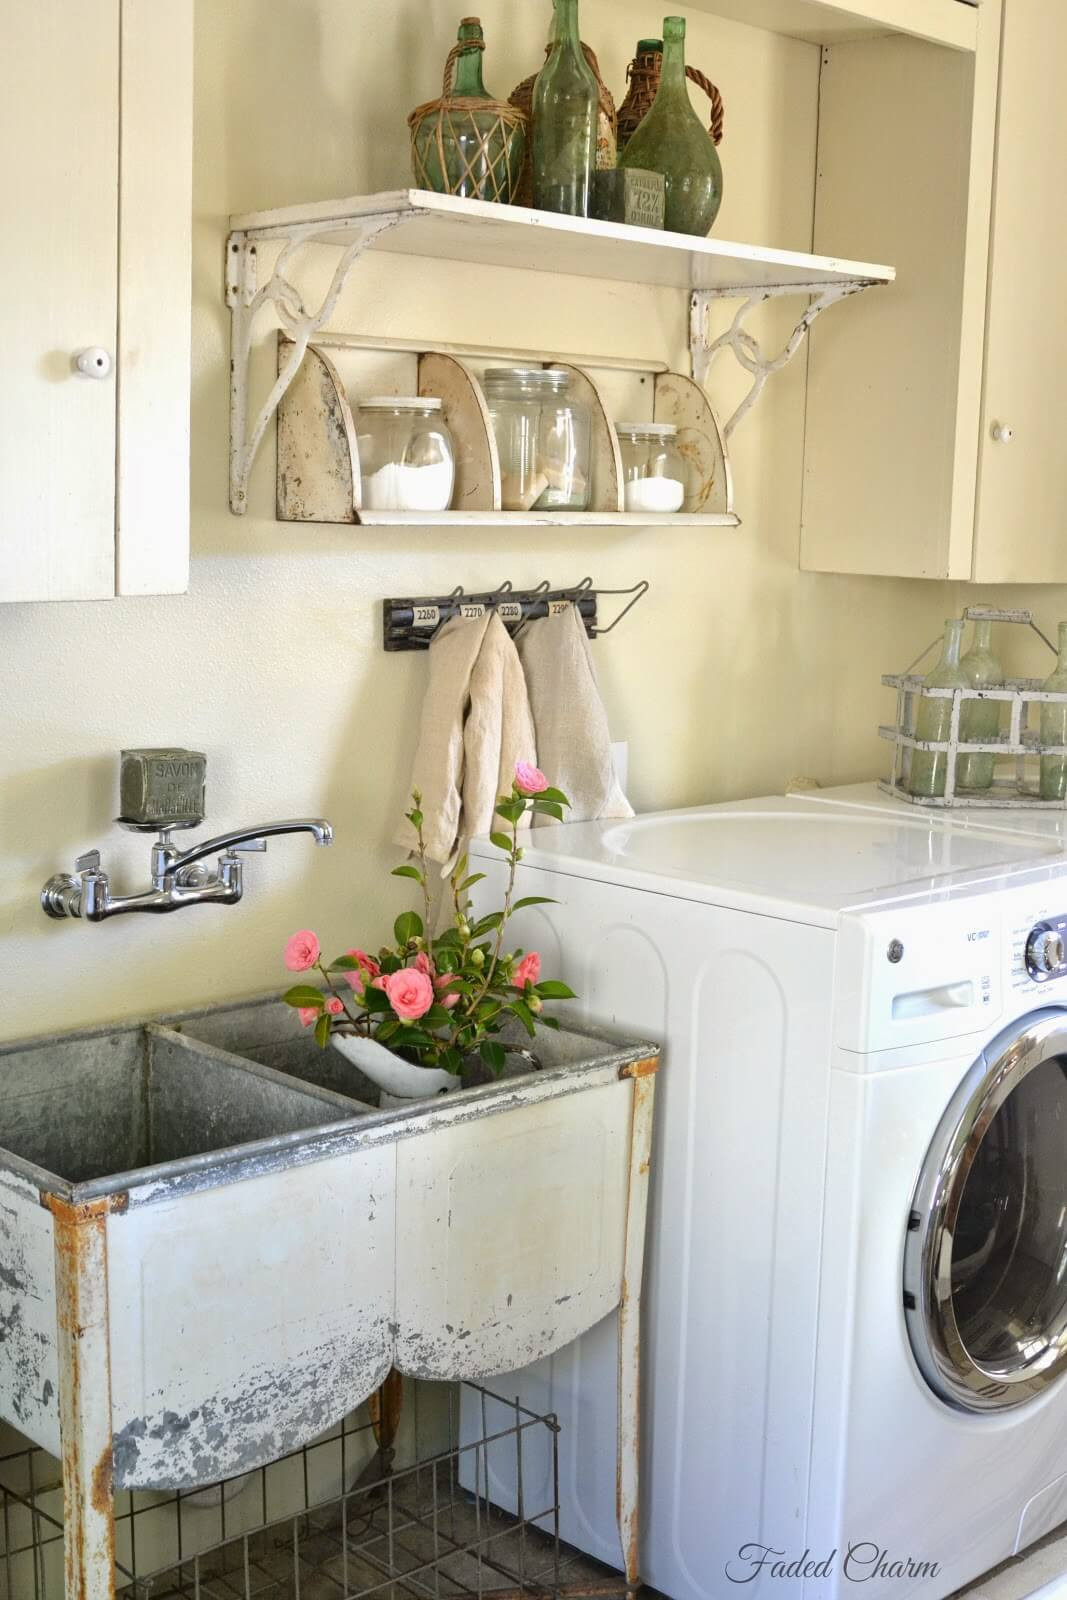 Best ideas about Vintage Laundry Room Decor . Save or Pin 25 Best Vintage Laundry Room Decor Ideas and Designs for 2017 Now.